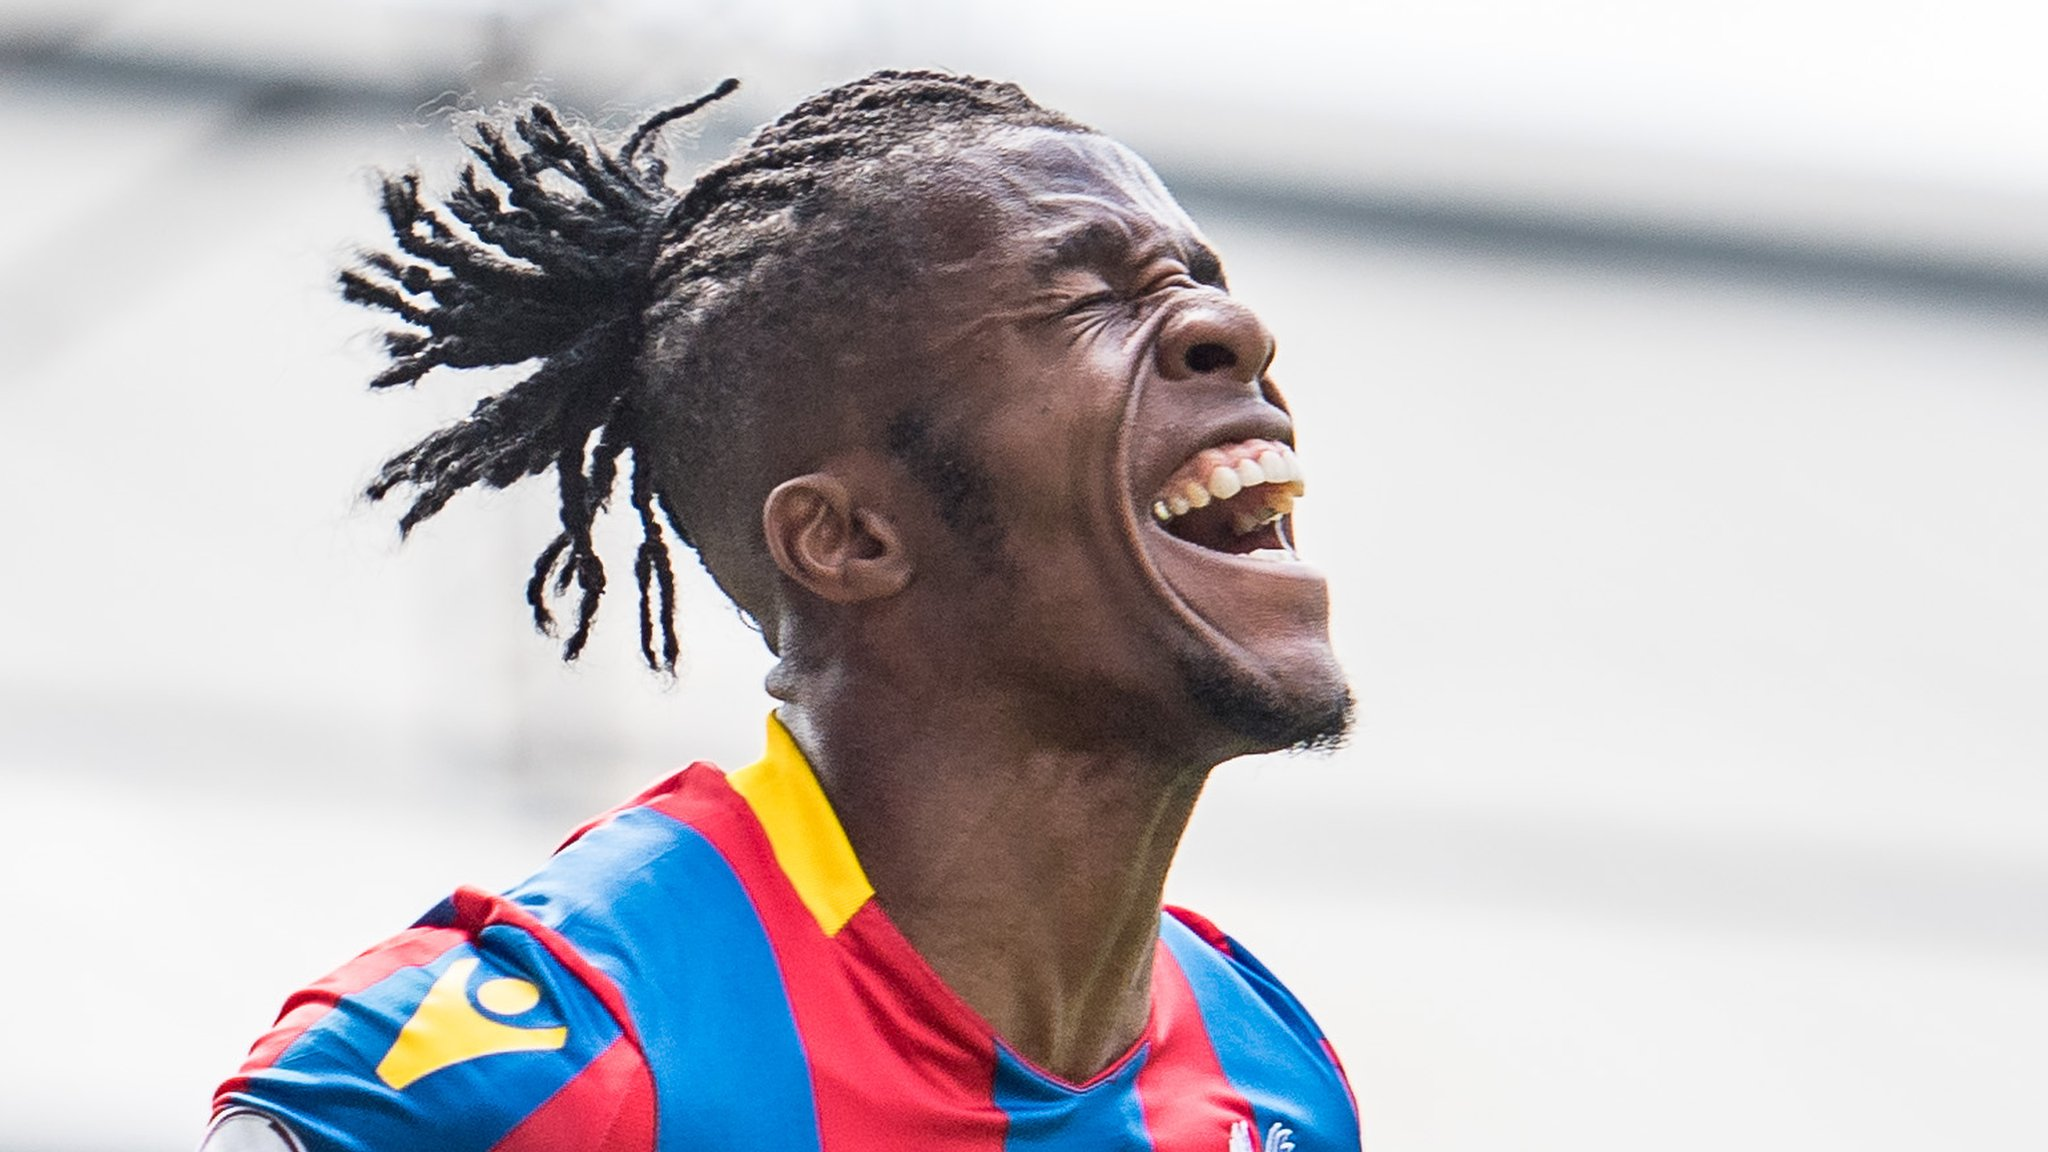 Wednesday's gossip - Palace to offer Zaha £120,000 a week